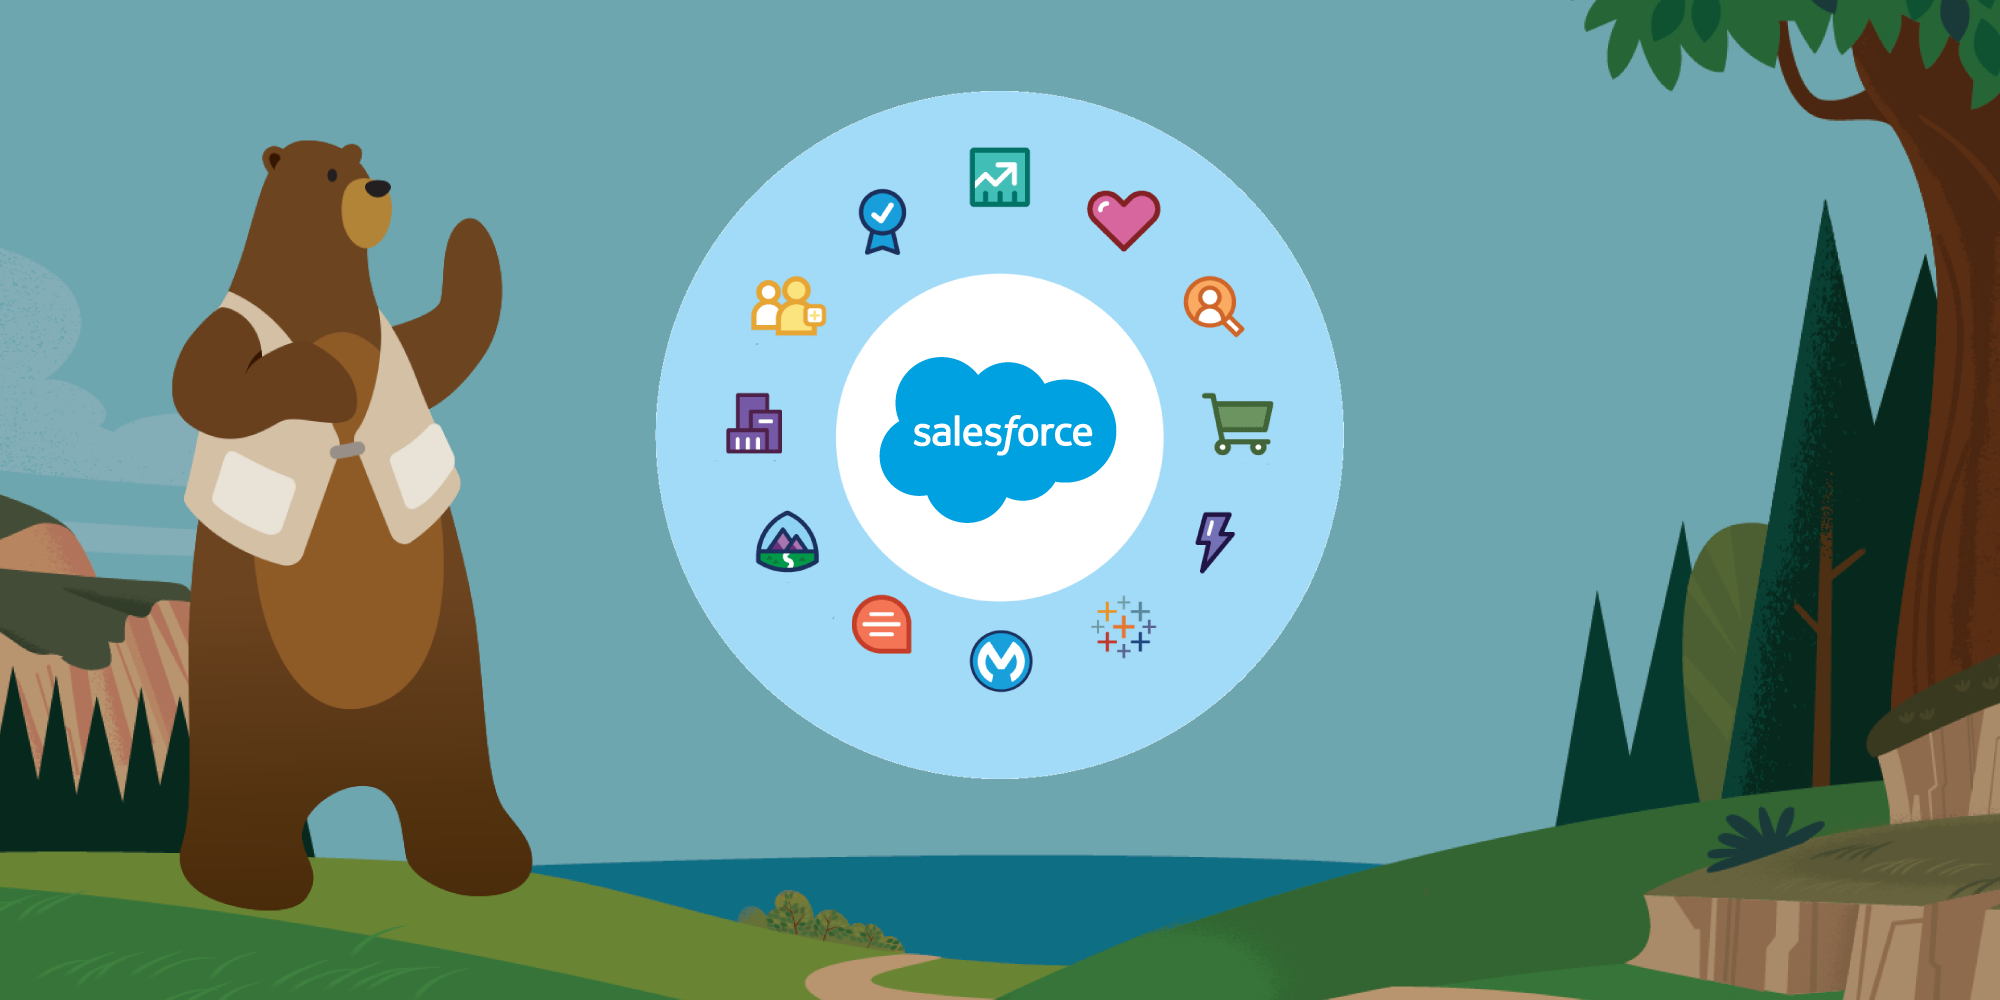 Salesforce for Your Business Needs